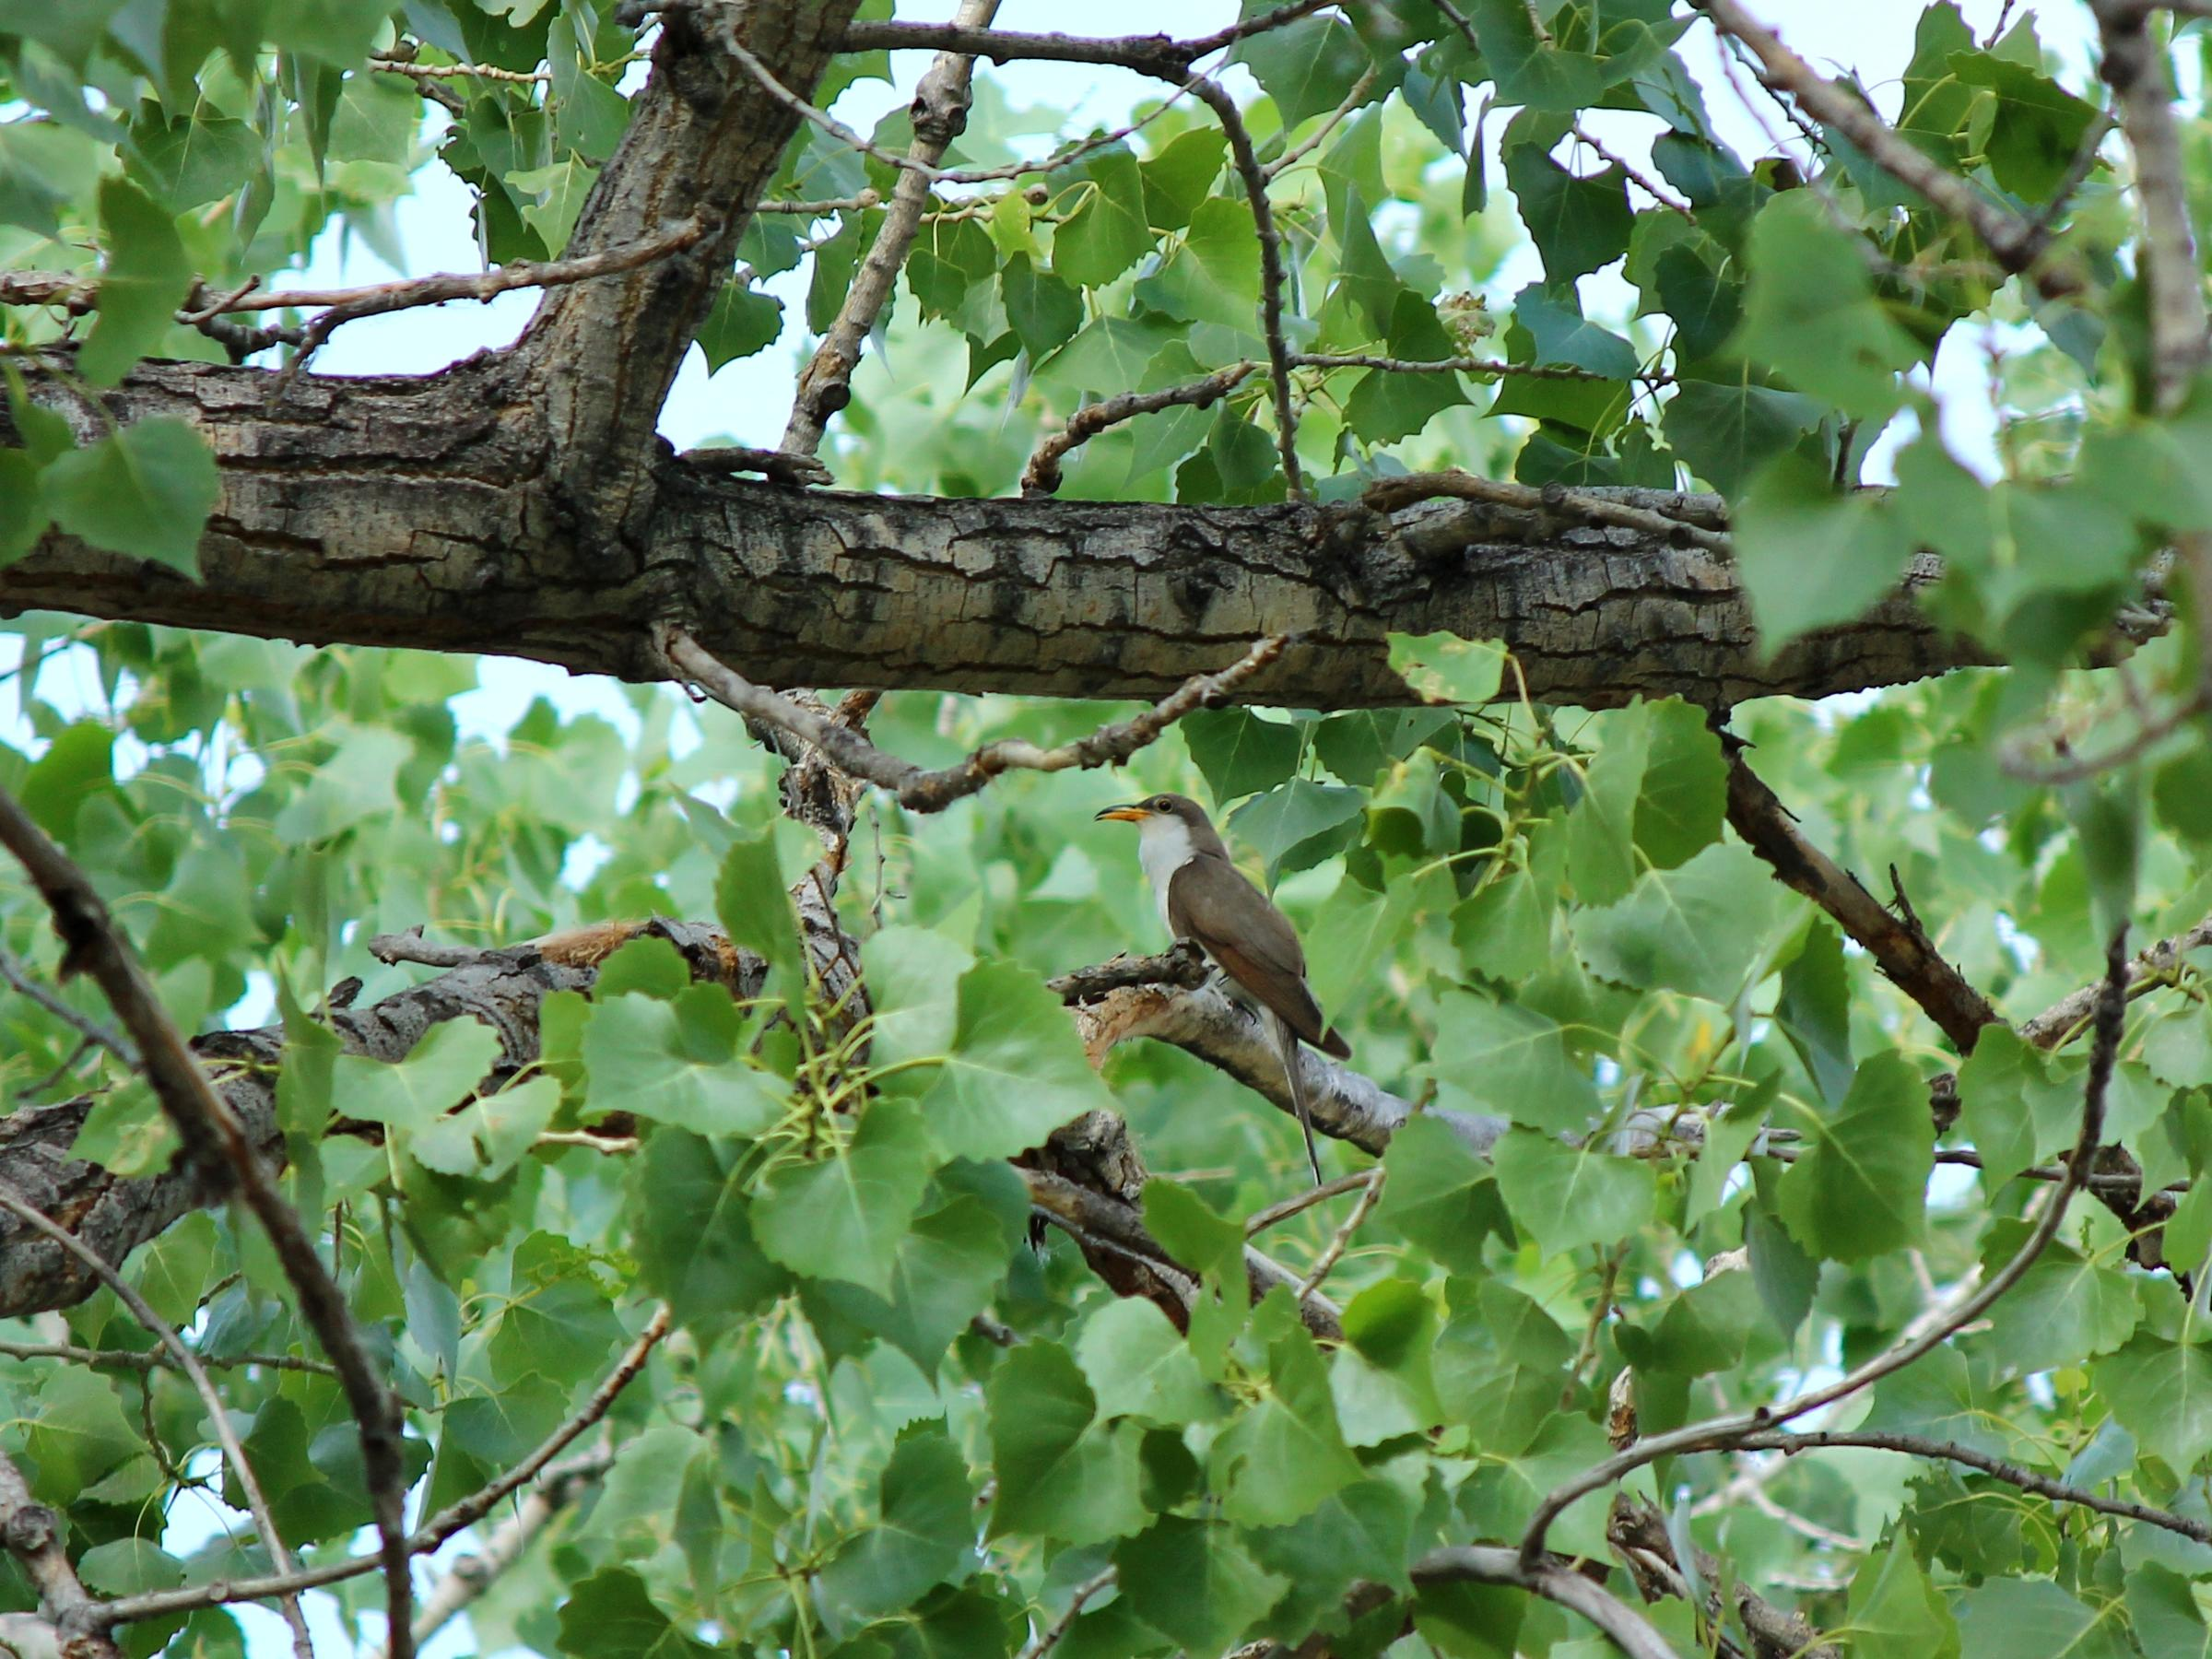 A Western Yellow-billed Cuckoo perches in the midst of branches and leaves.